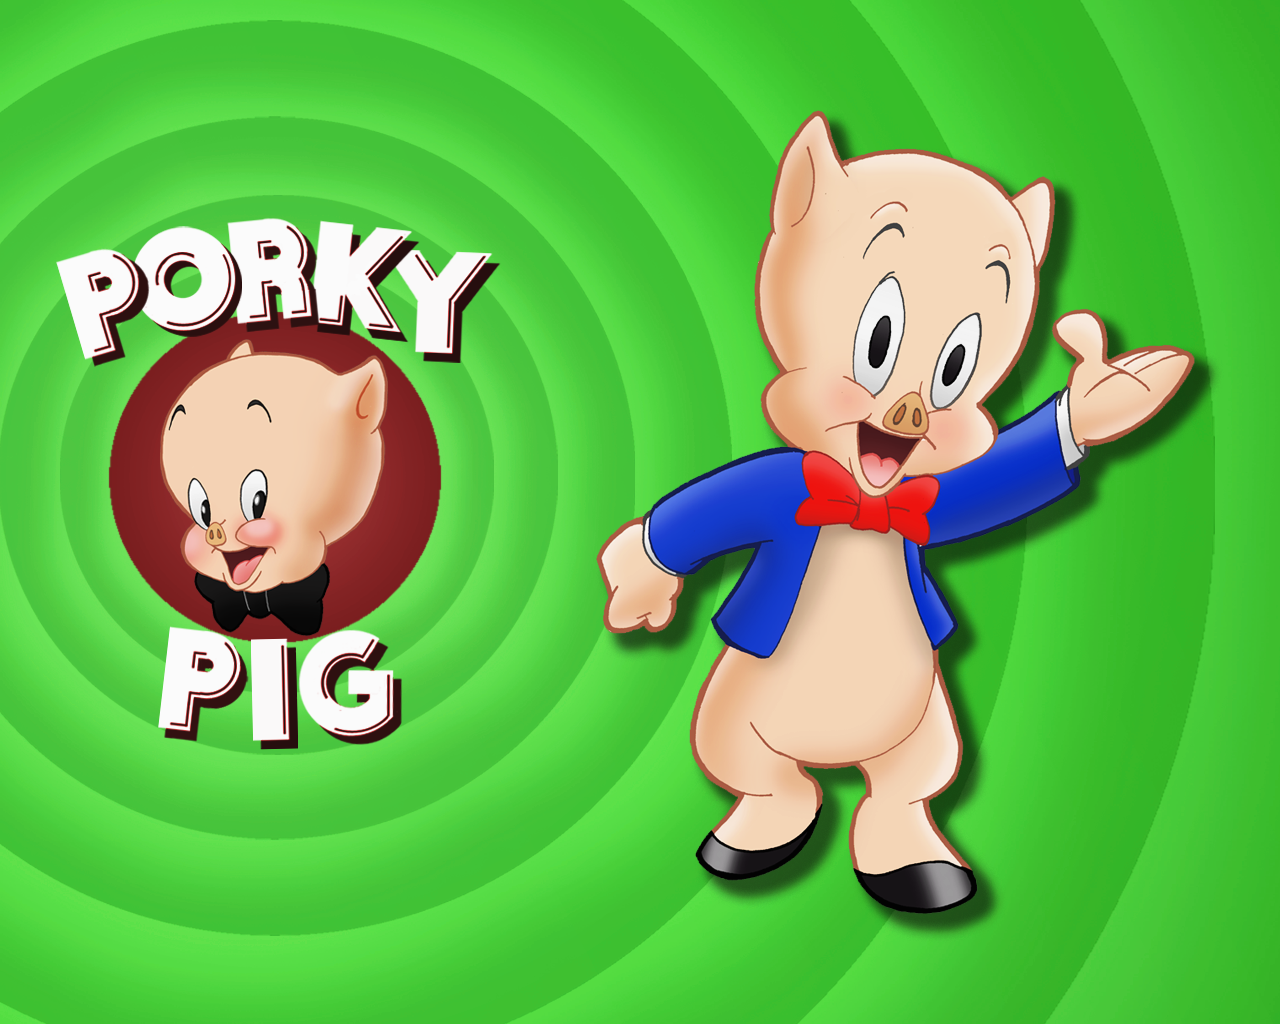 Animation pictures wallpapers porky pig wallpapers - Cartoon character wallpaper ...